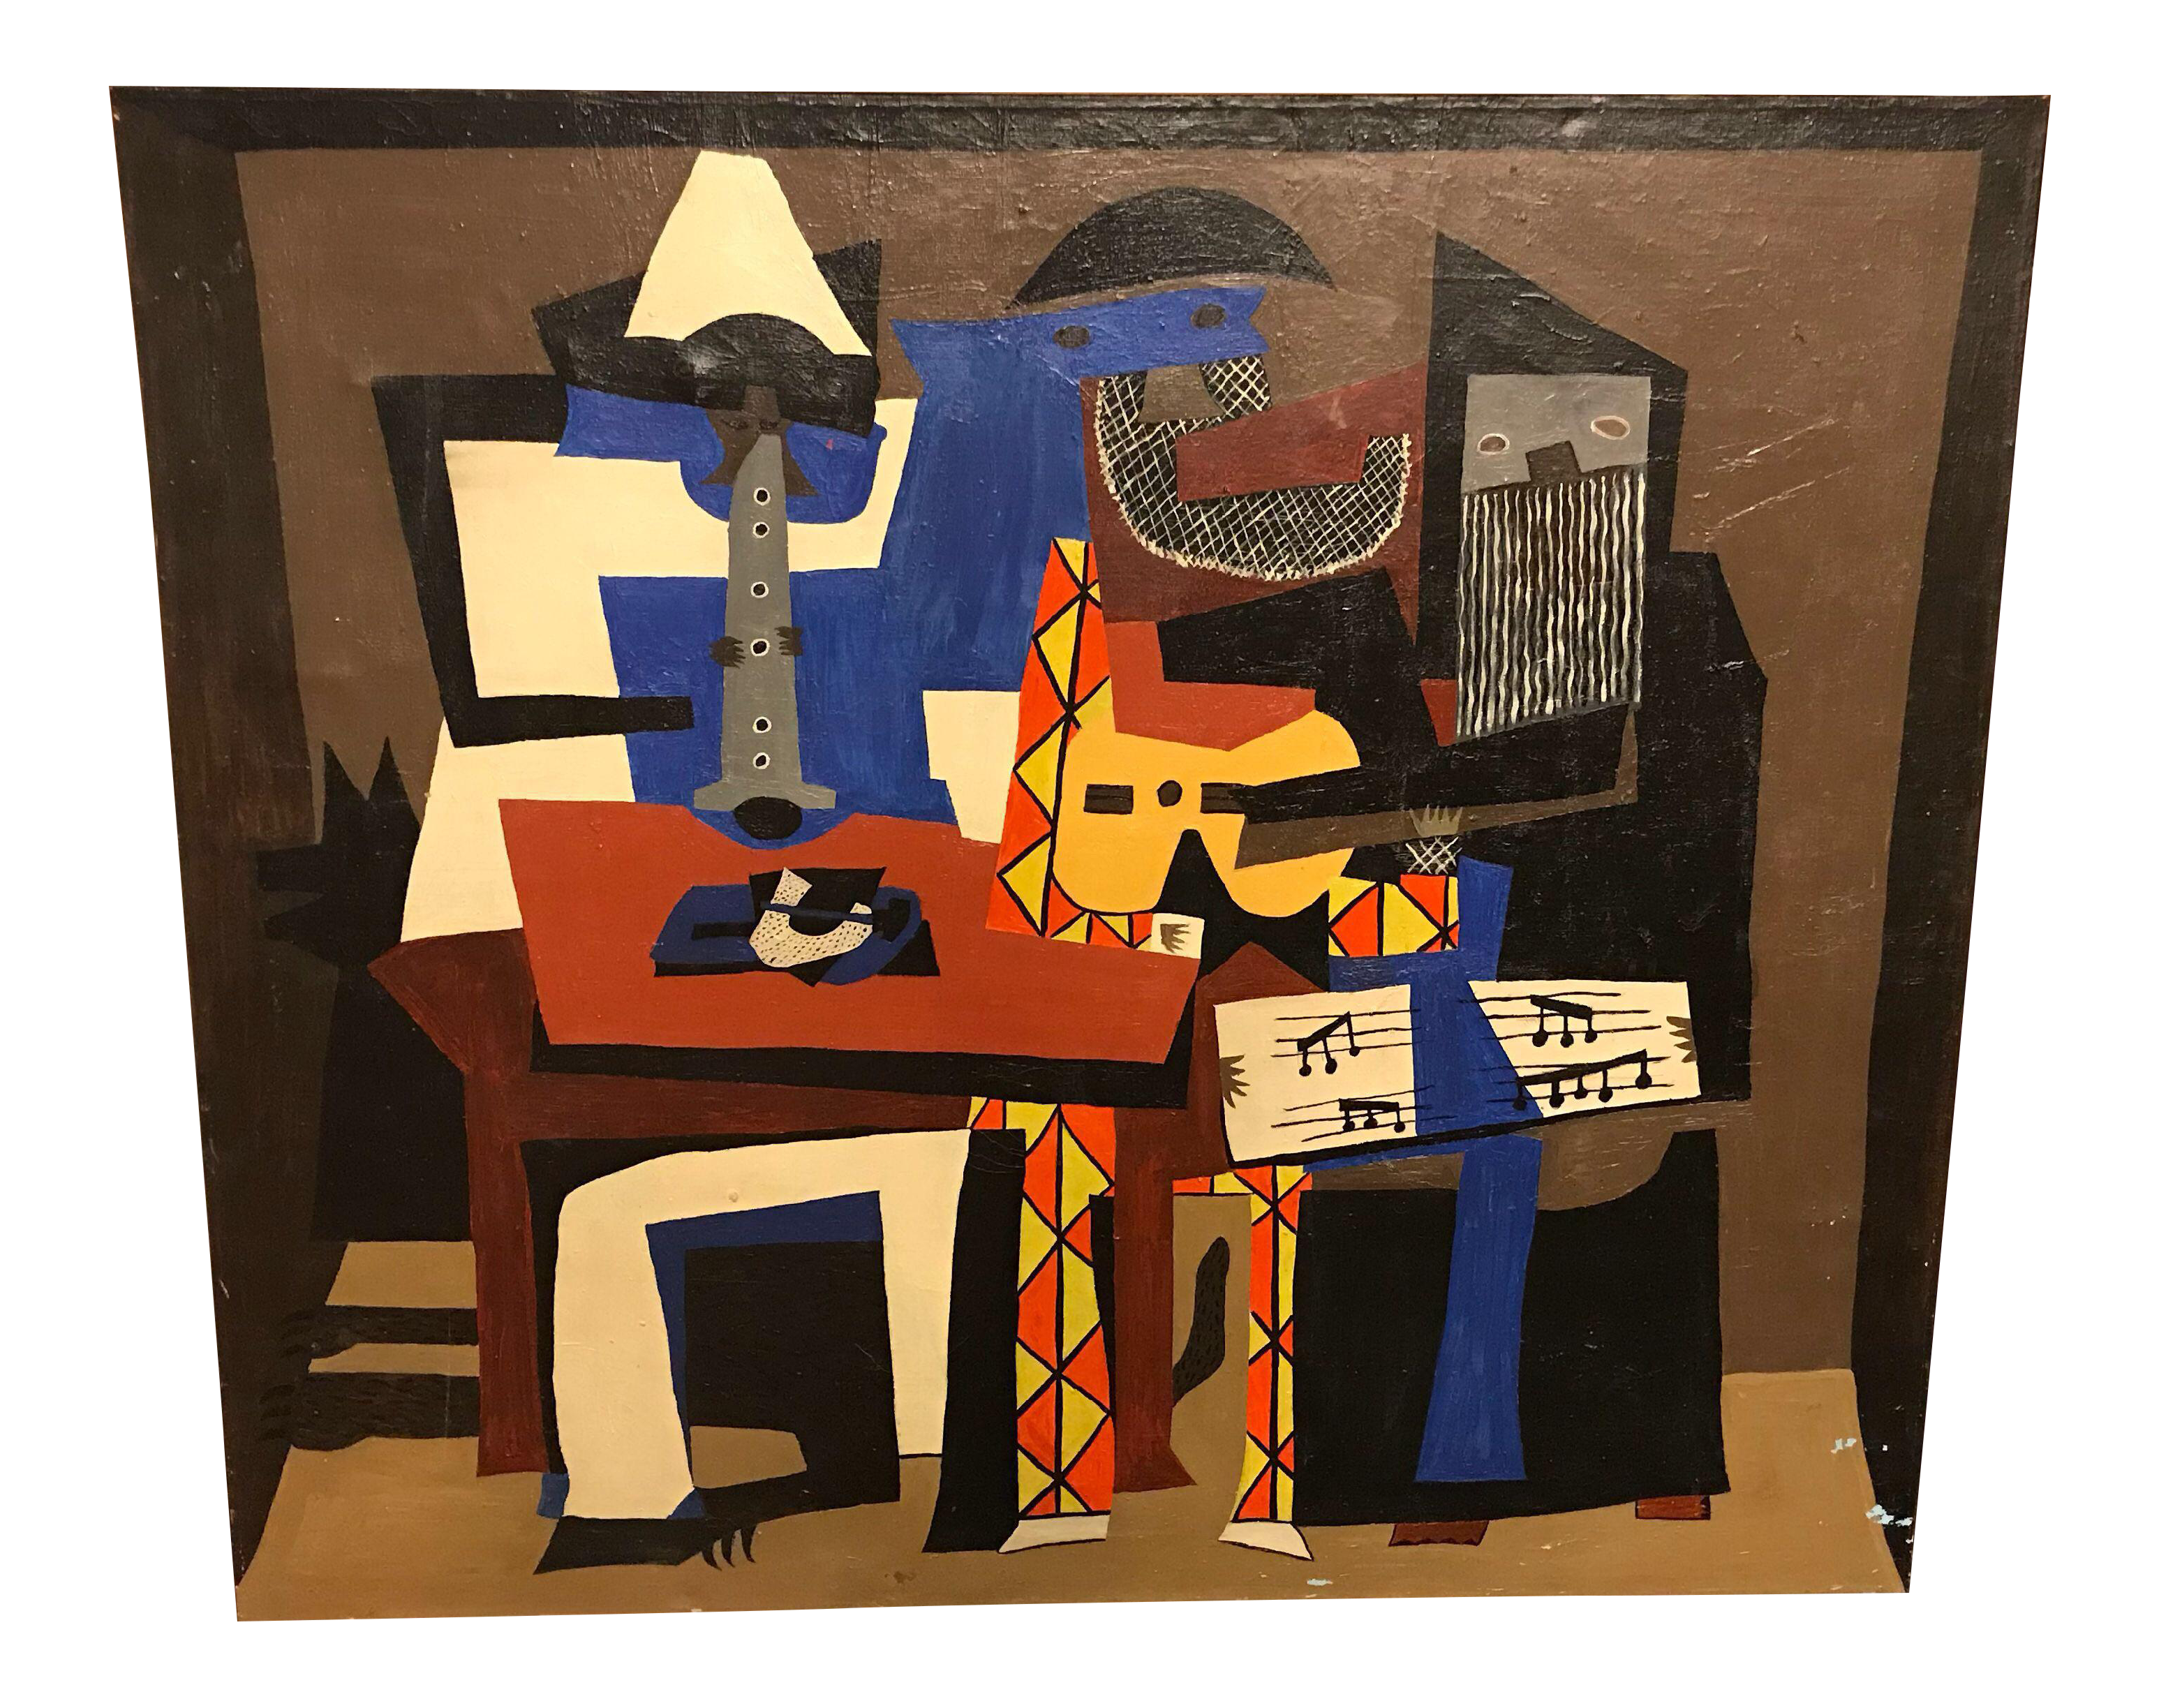 Cubism drawing student. Cubist after pablo picasso